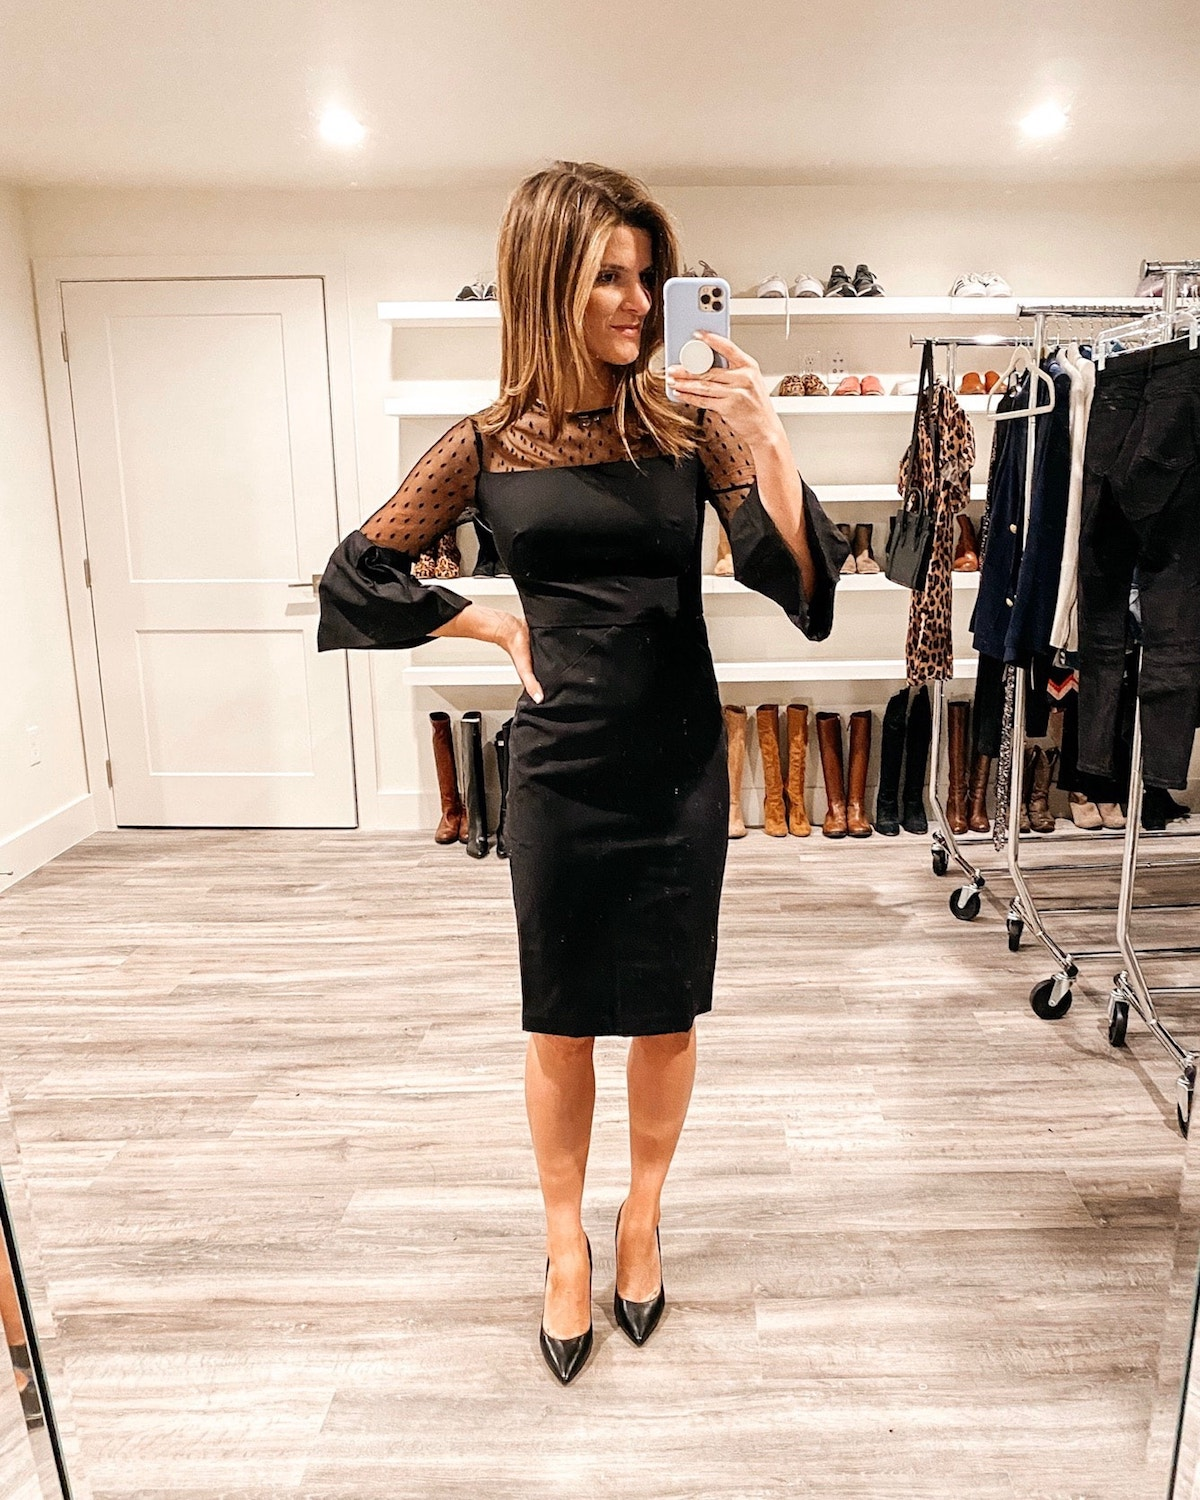 Brighton Keller wearing black dress for holiday work party